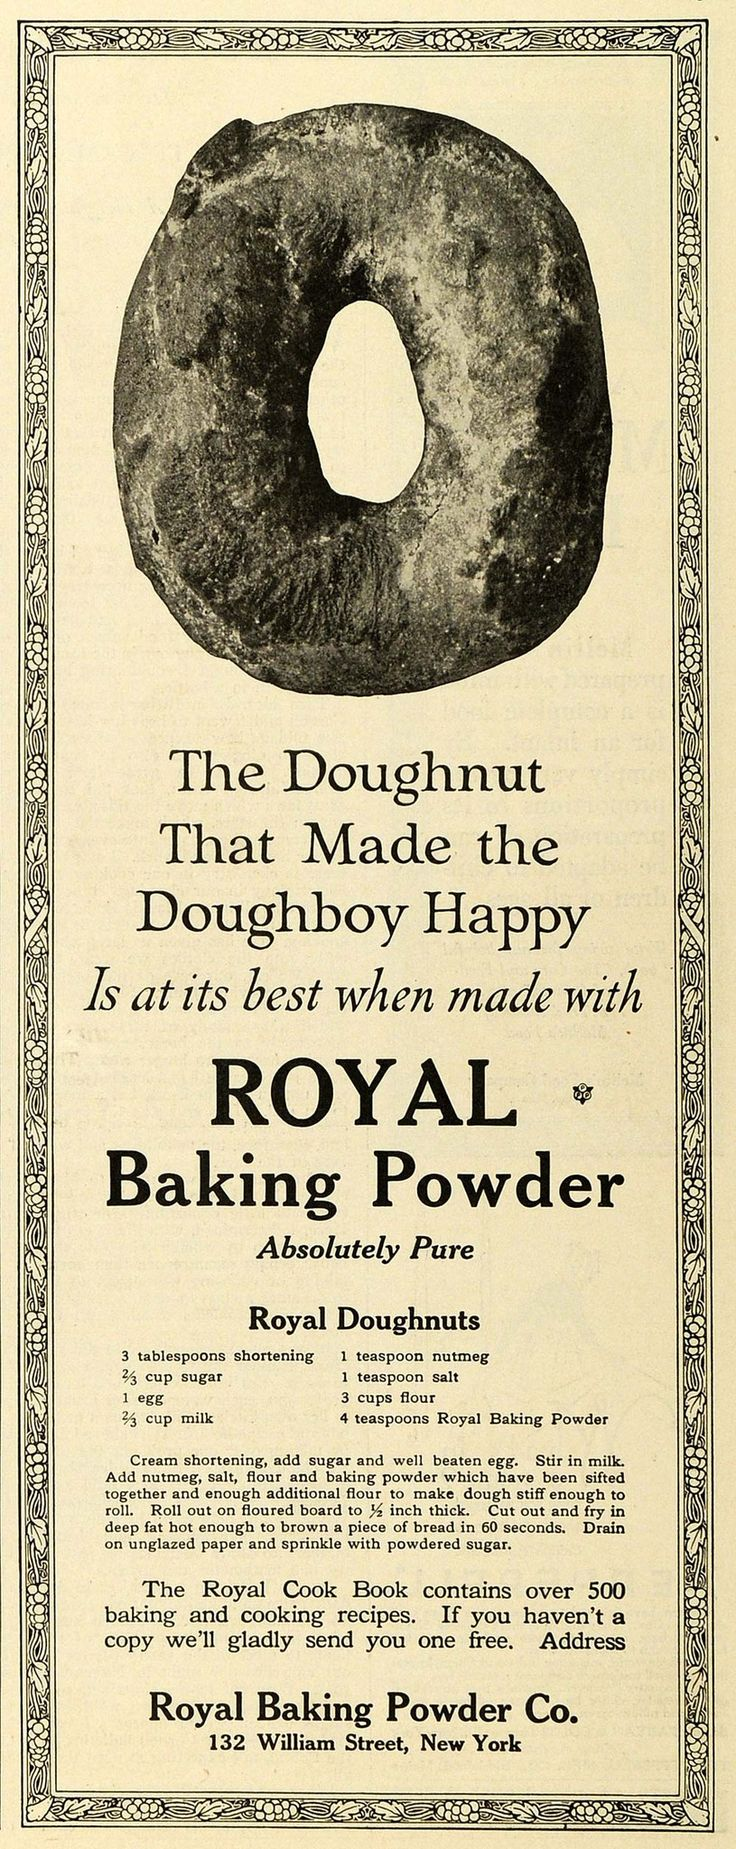 1919 Ad Doughnut Recipe Food Products Royal Baking Powder Donut Sweets TMP2